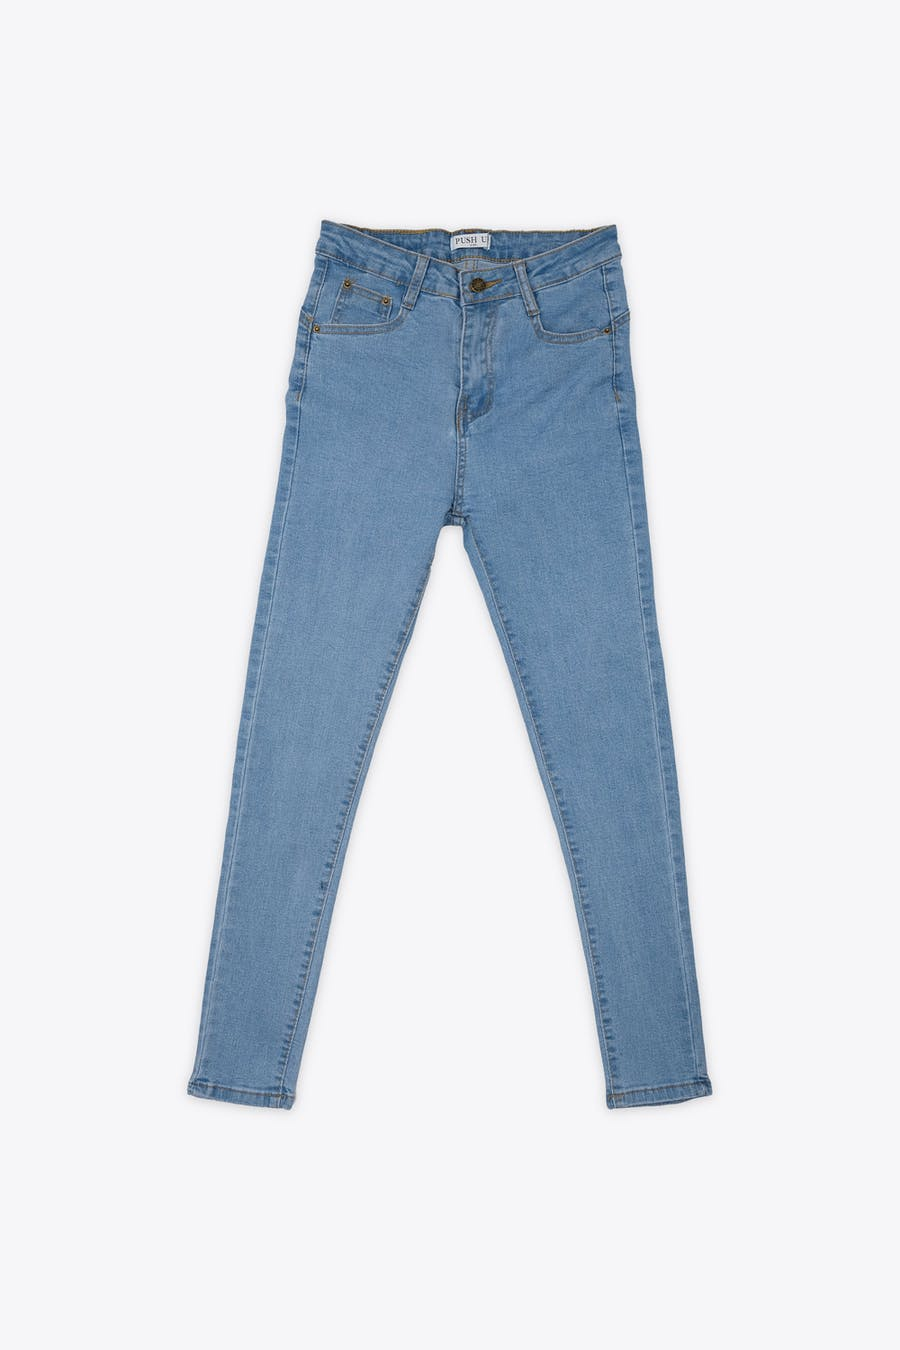 Jeans cassual push up